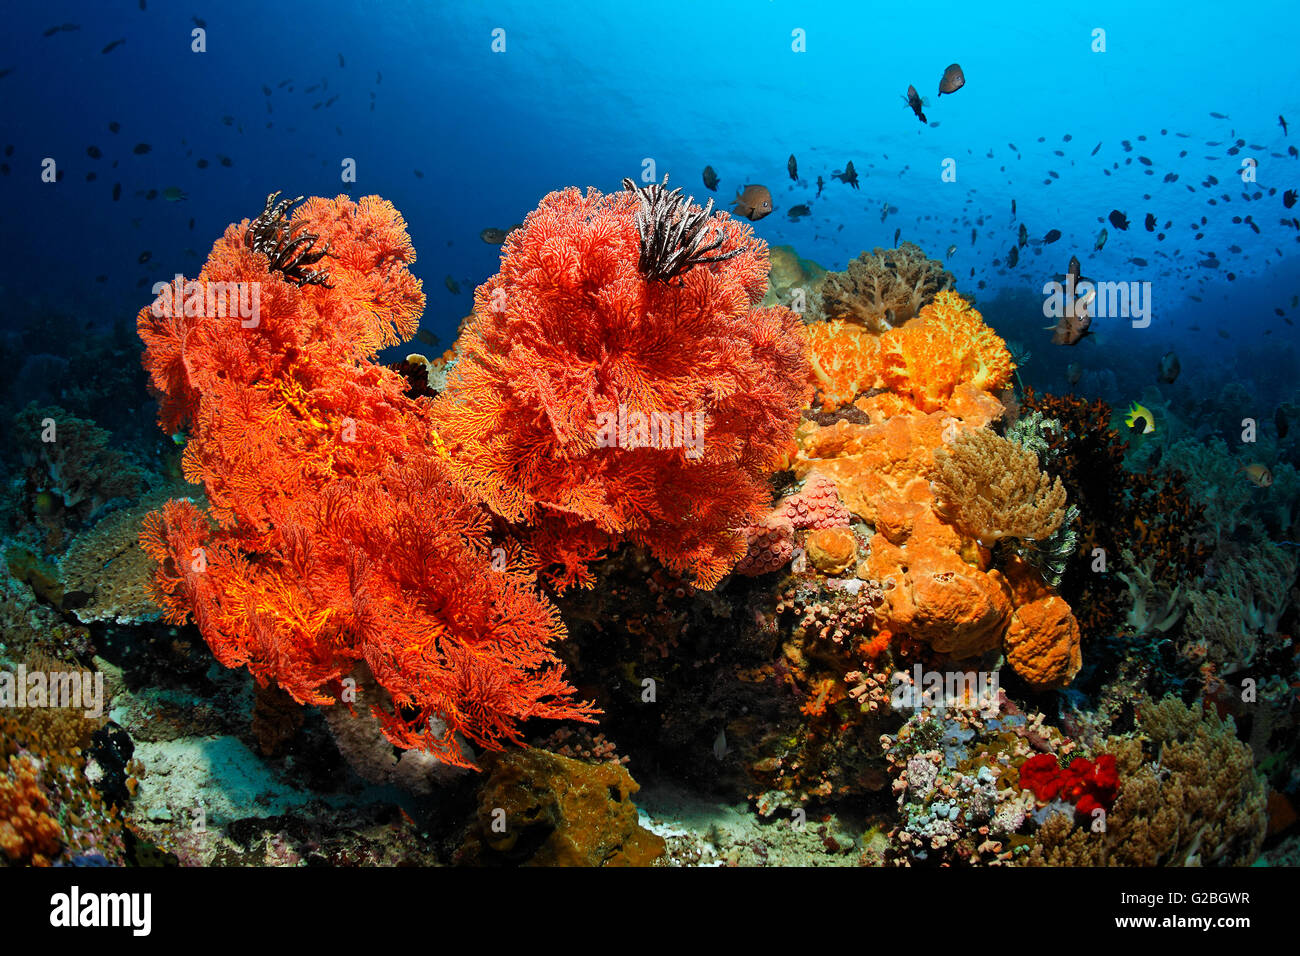 Coral colony, fish, invertebrates, stony coral, soft coral, gorgonian, sponge, sea squirt, Great Barrier Reef, Queensland - Stock Image